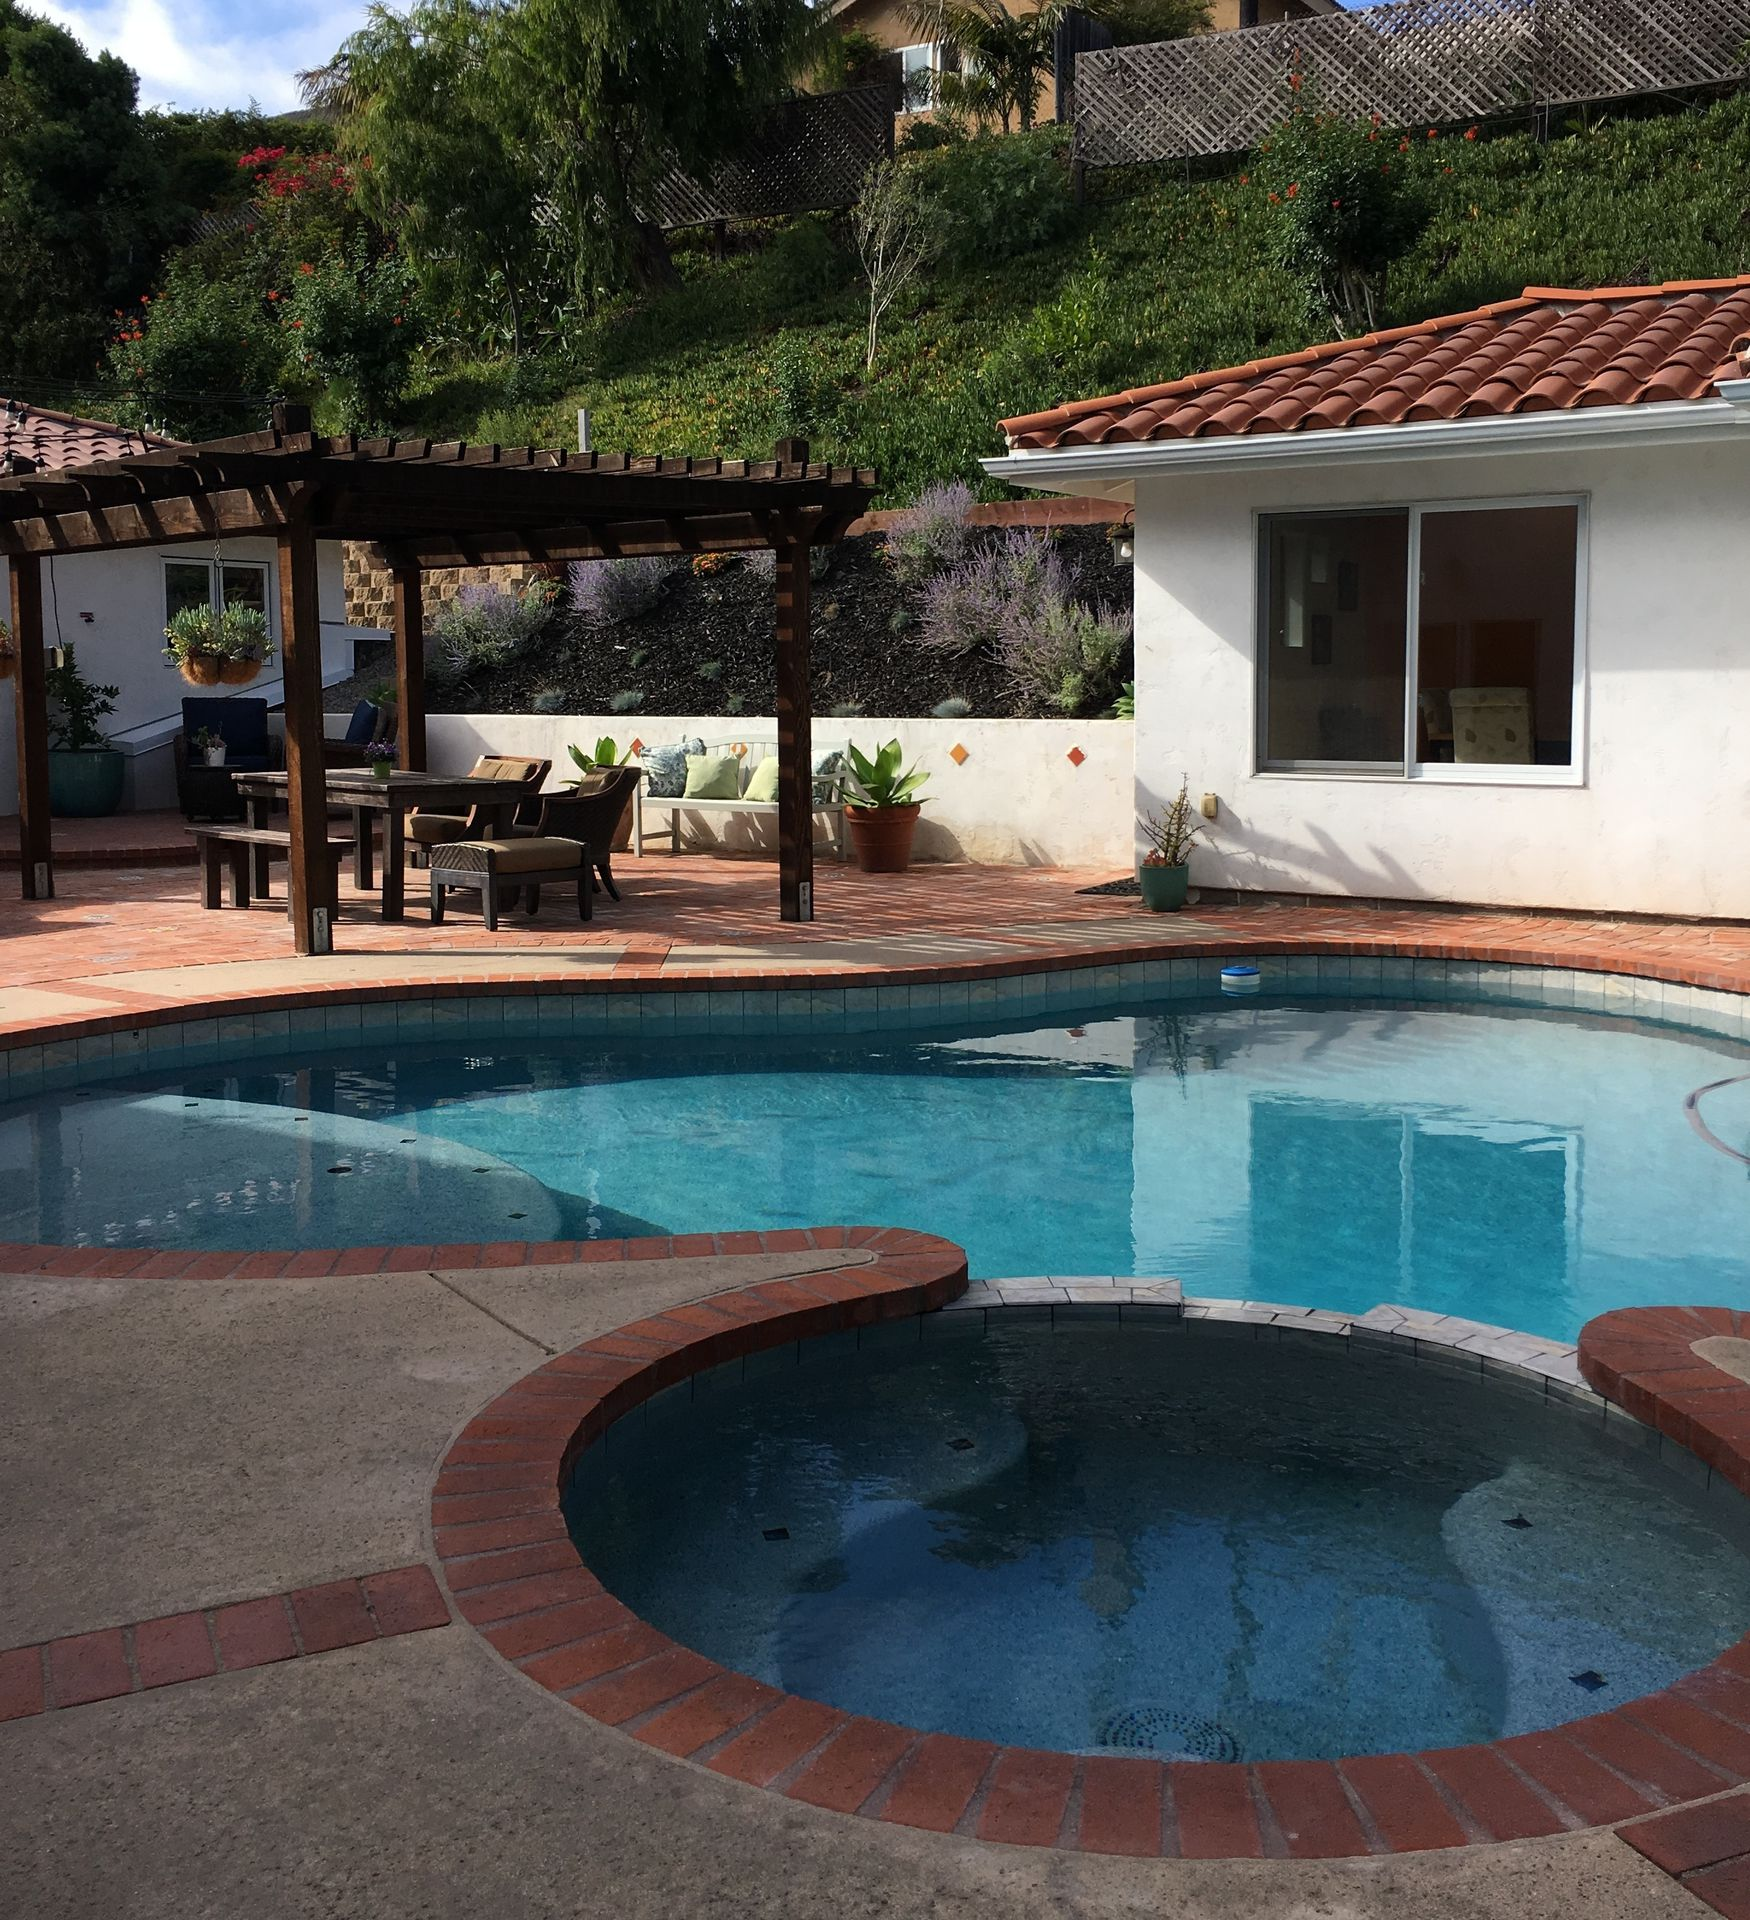 Attractive Patio, Pool With Hot Tub, And Outdoor Eating Area.